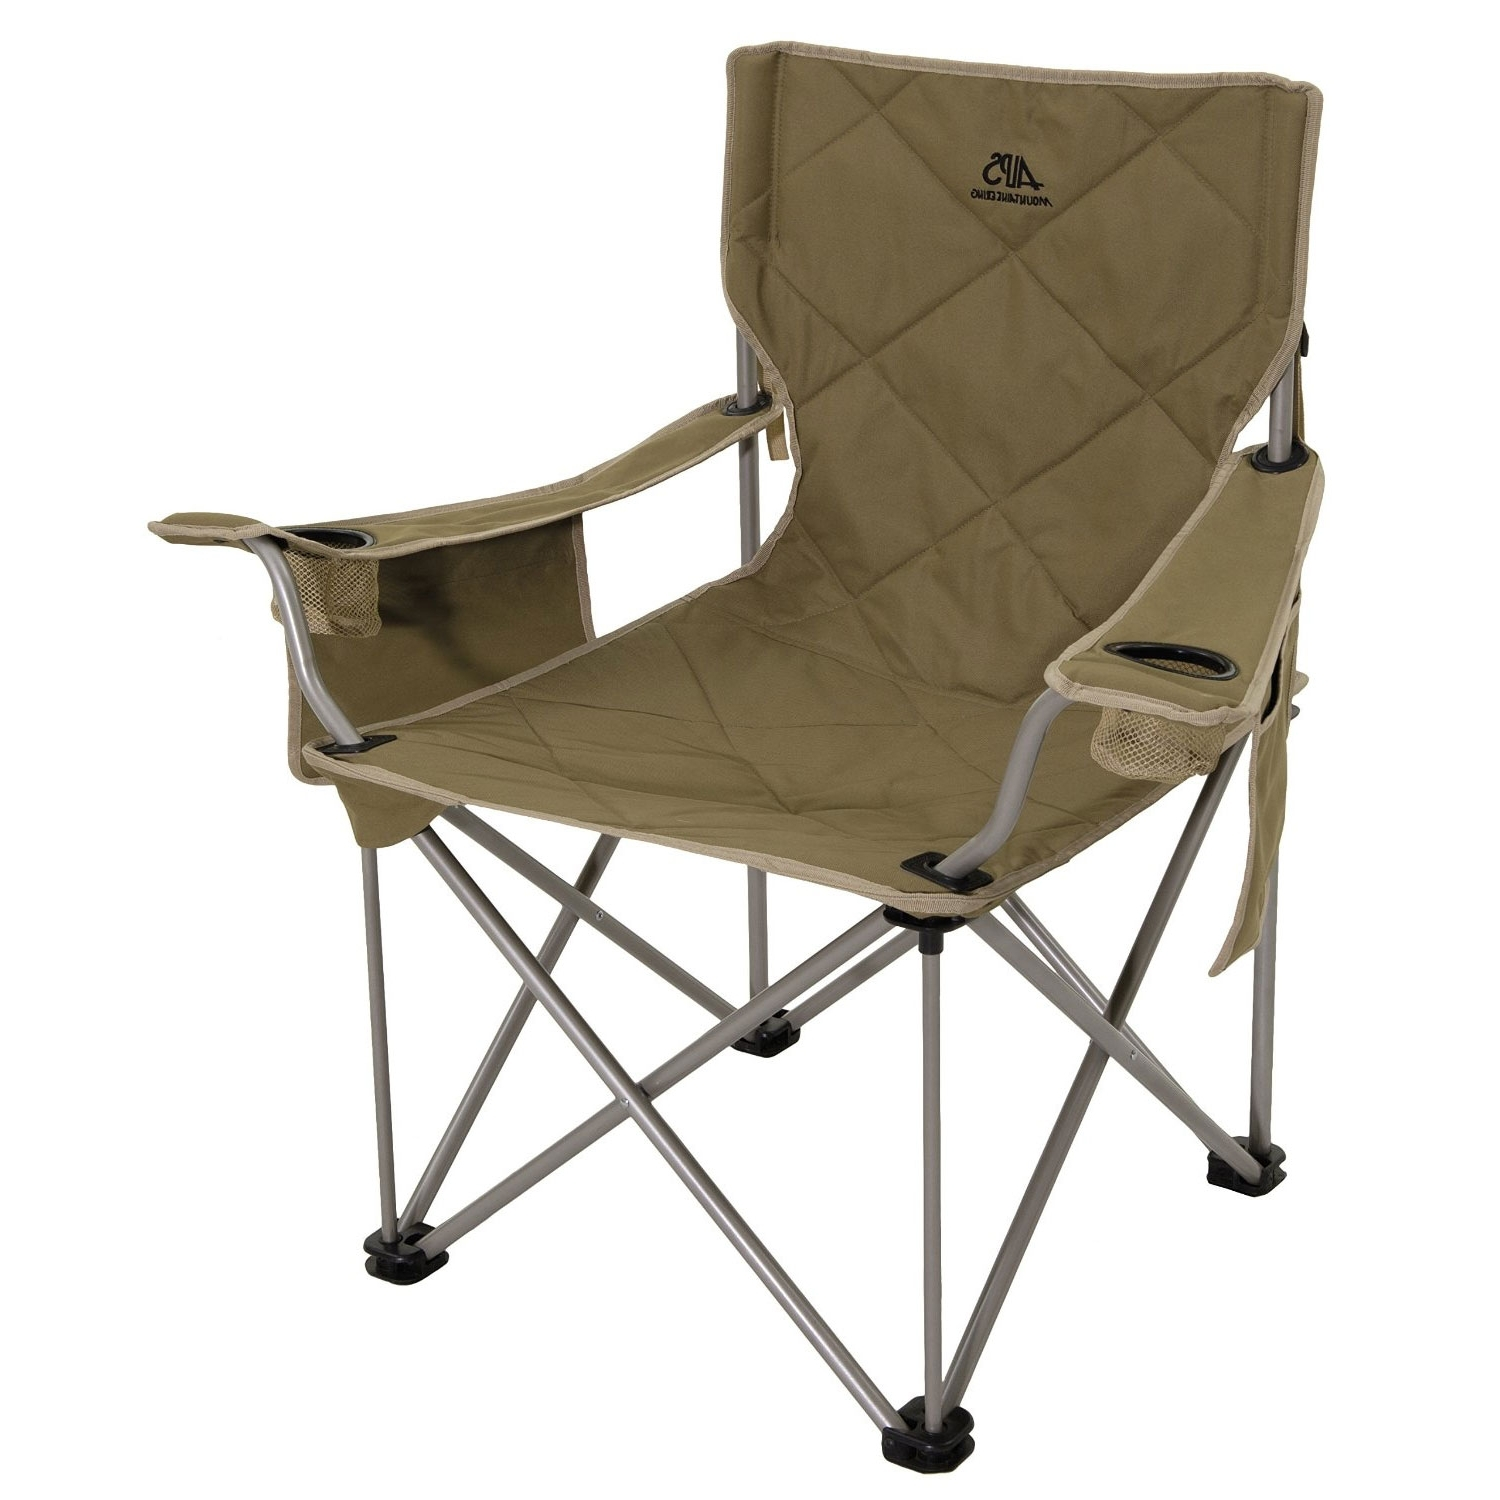 Heavy Duty Chaise Lounge Chairs Regarding Preferred Lounge Chair : Reclining Chair Extra Large Heavy Duty Folding (View 4 of 15)